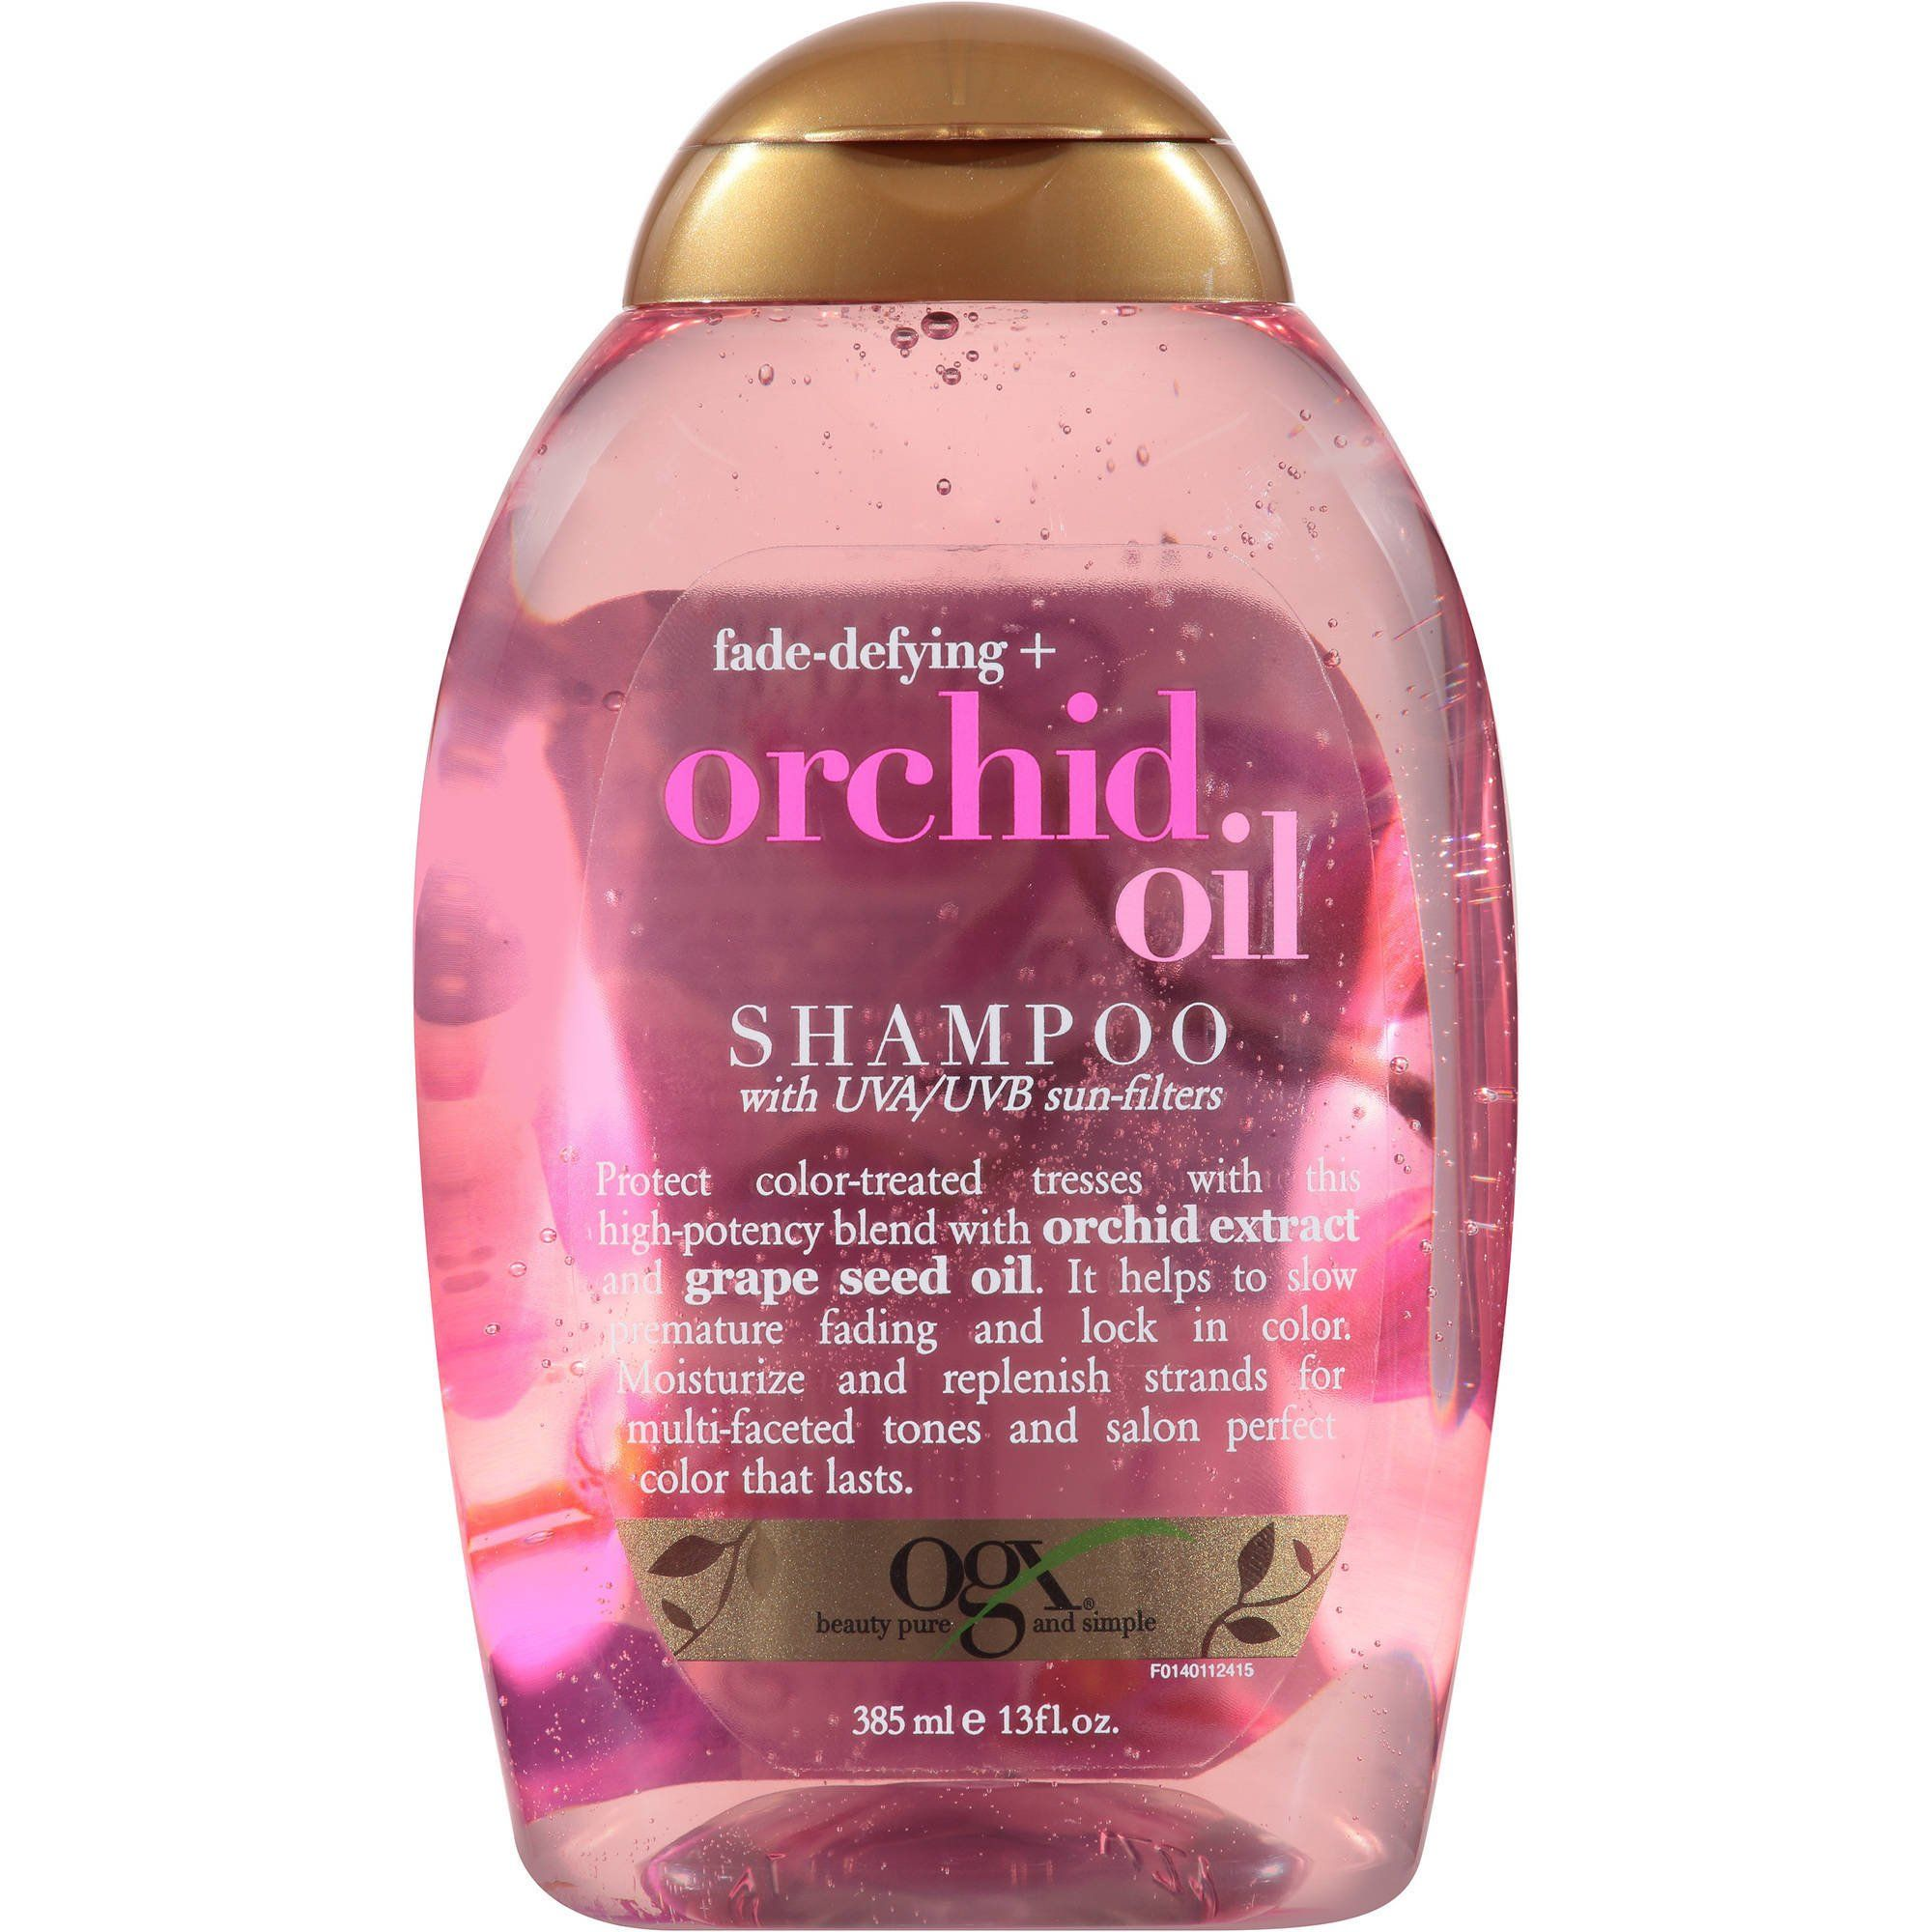 Ogx Fade Defying Orchid Oil Shampoo And Conditioner Ogx Shampoo Ogx Hair Products Oil Shampoo